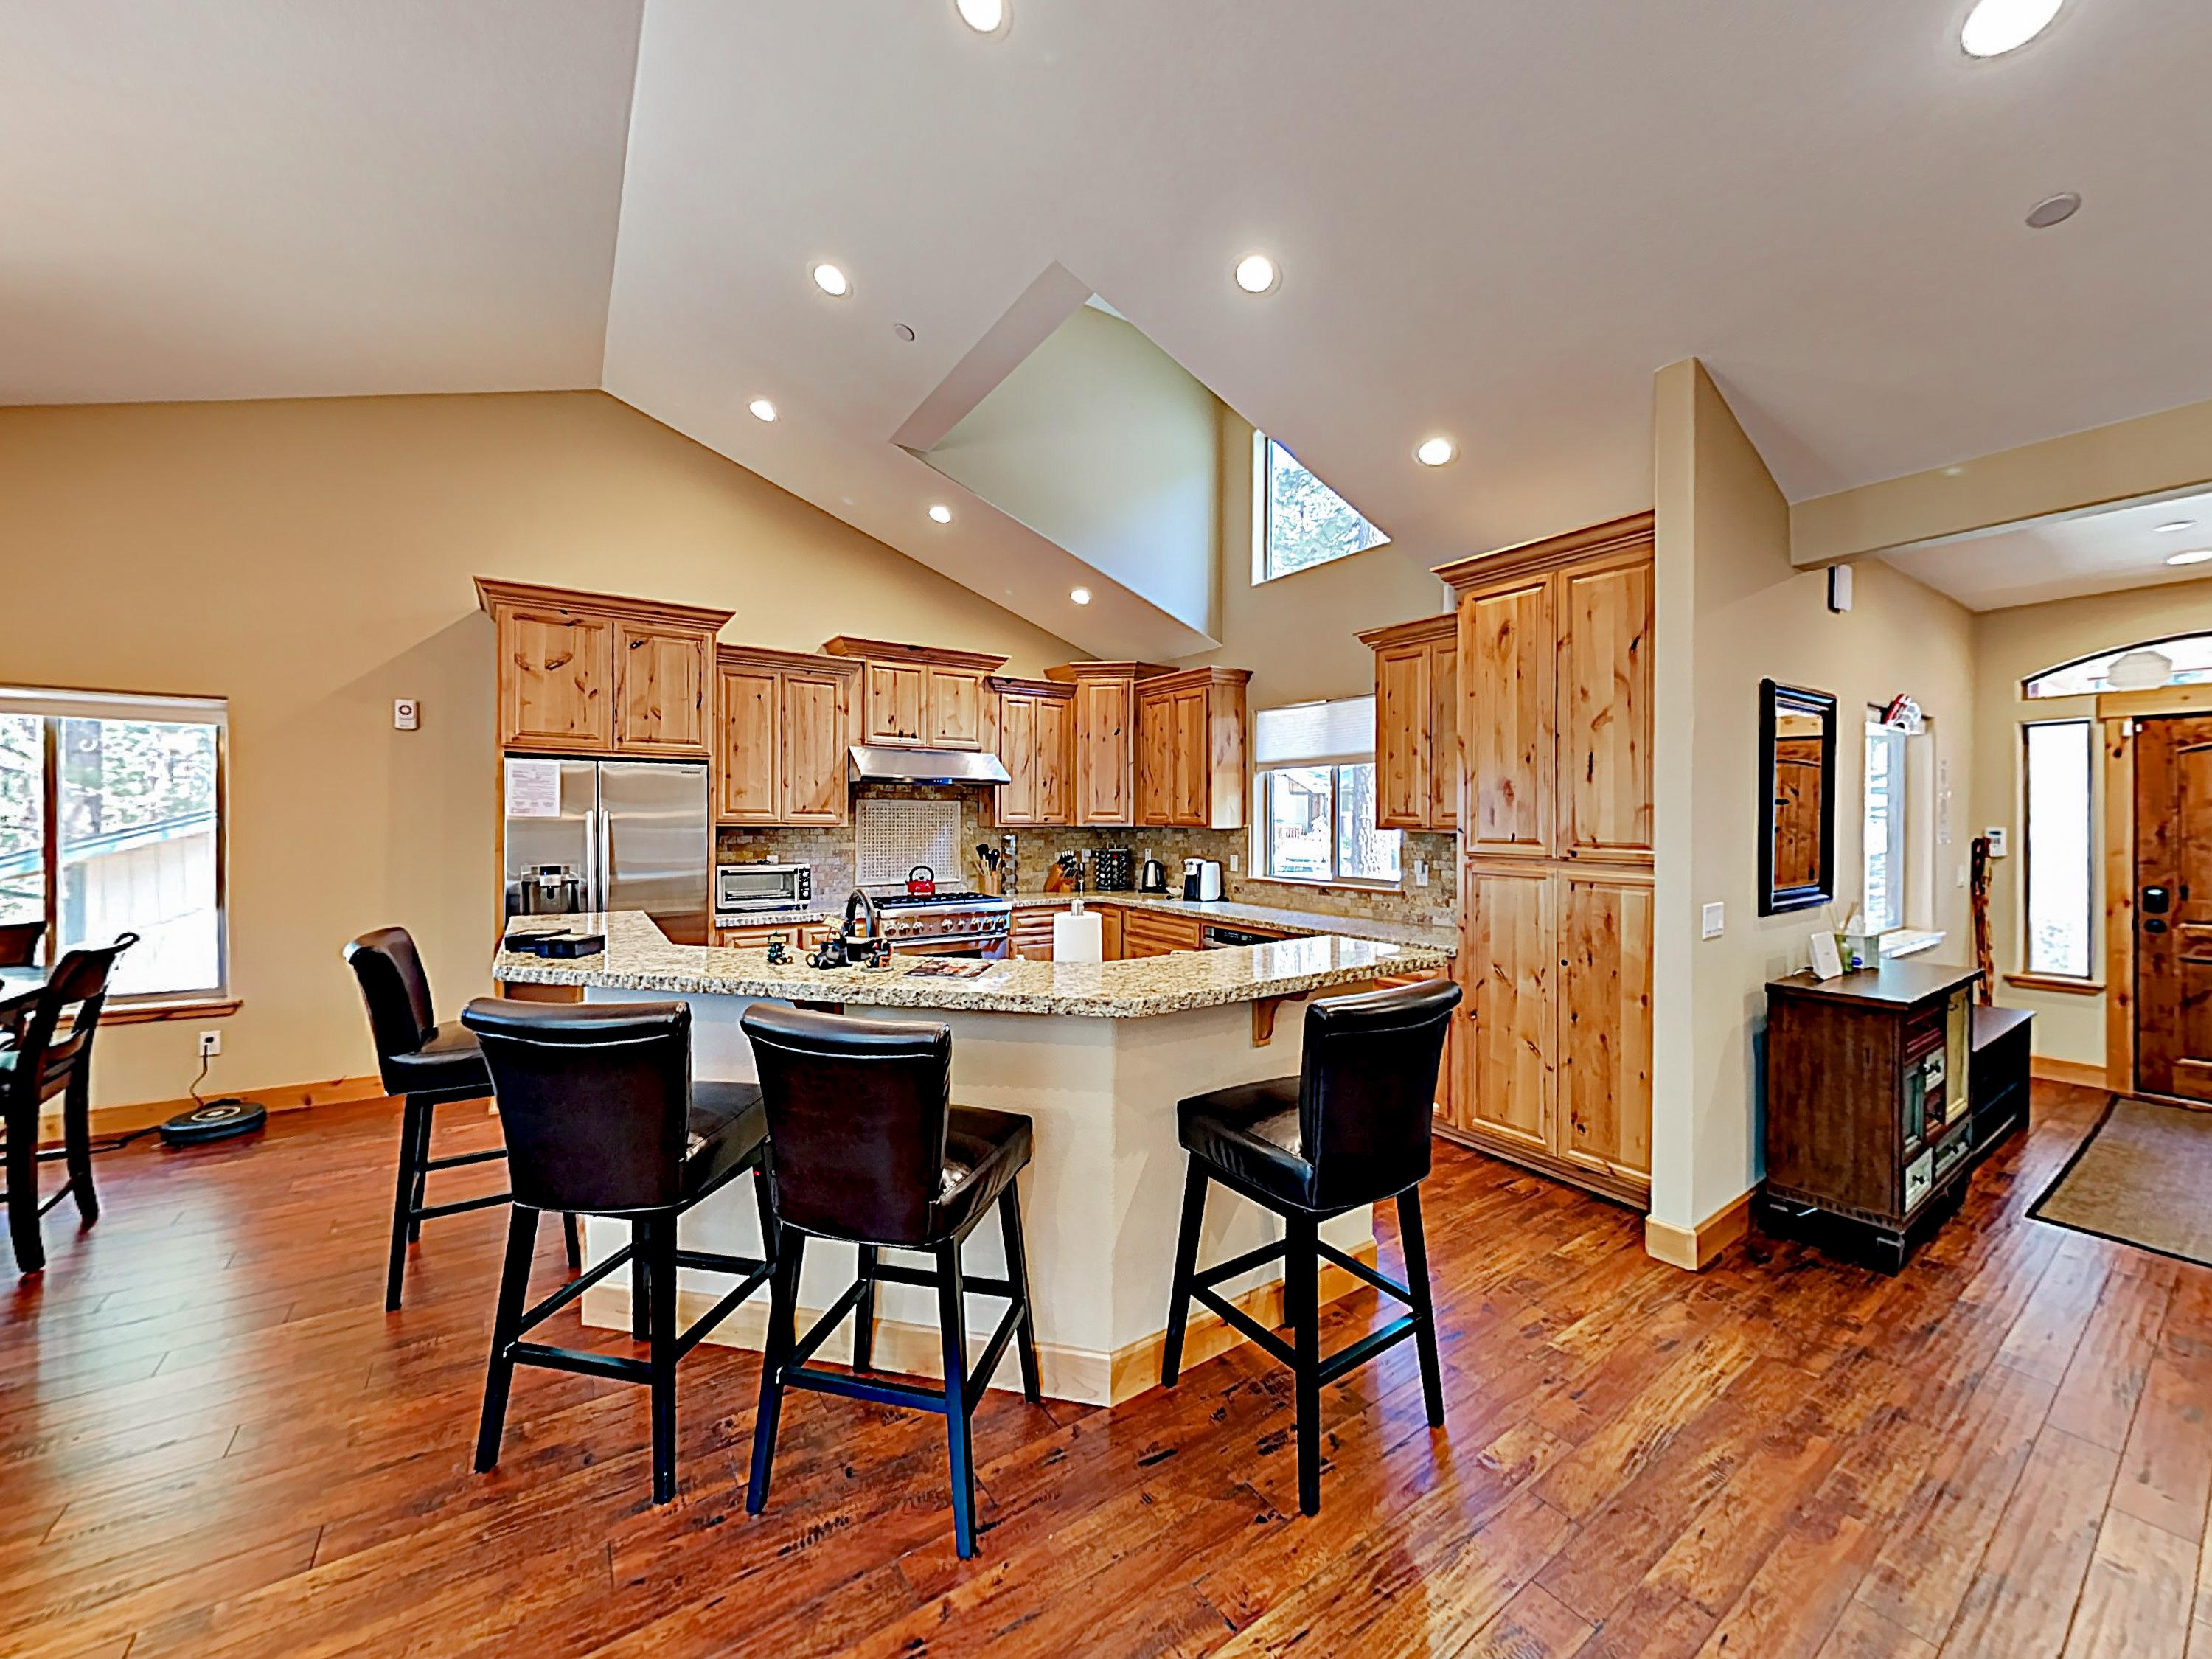 A large breakfast bar in the kitchen comfortably seats 4.